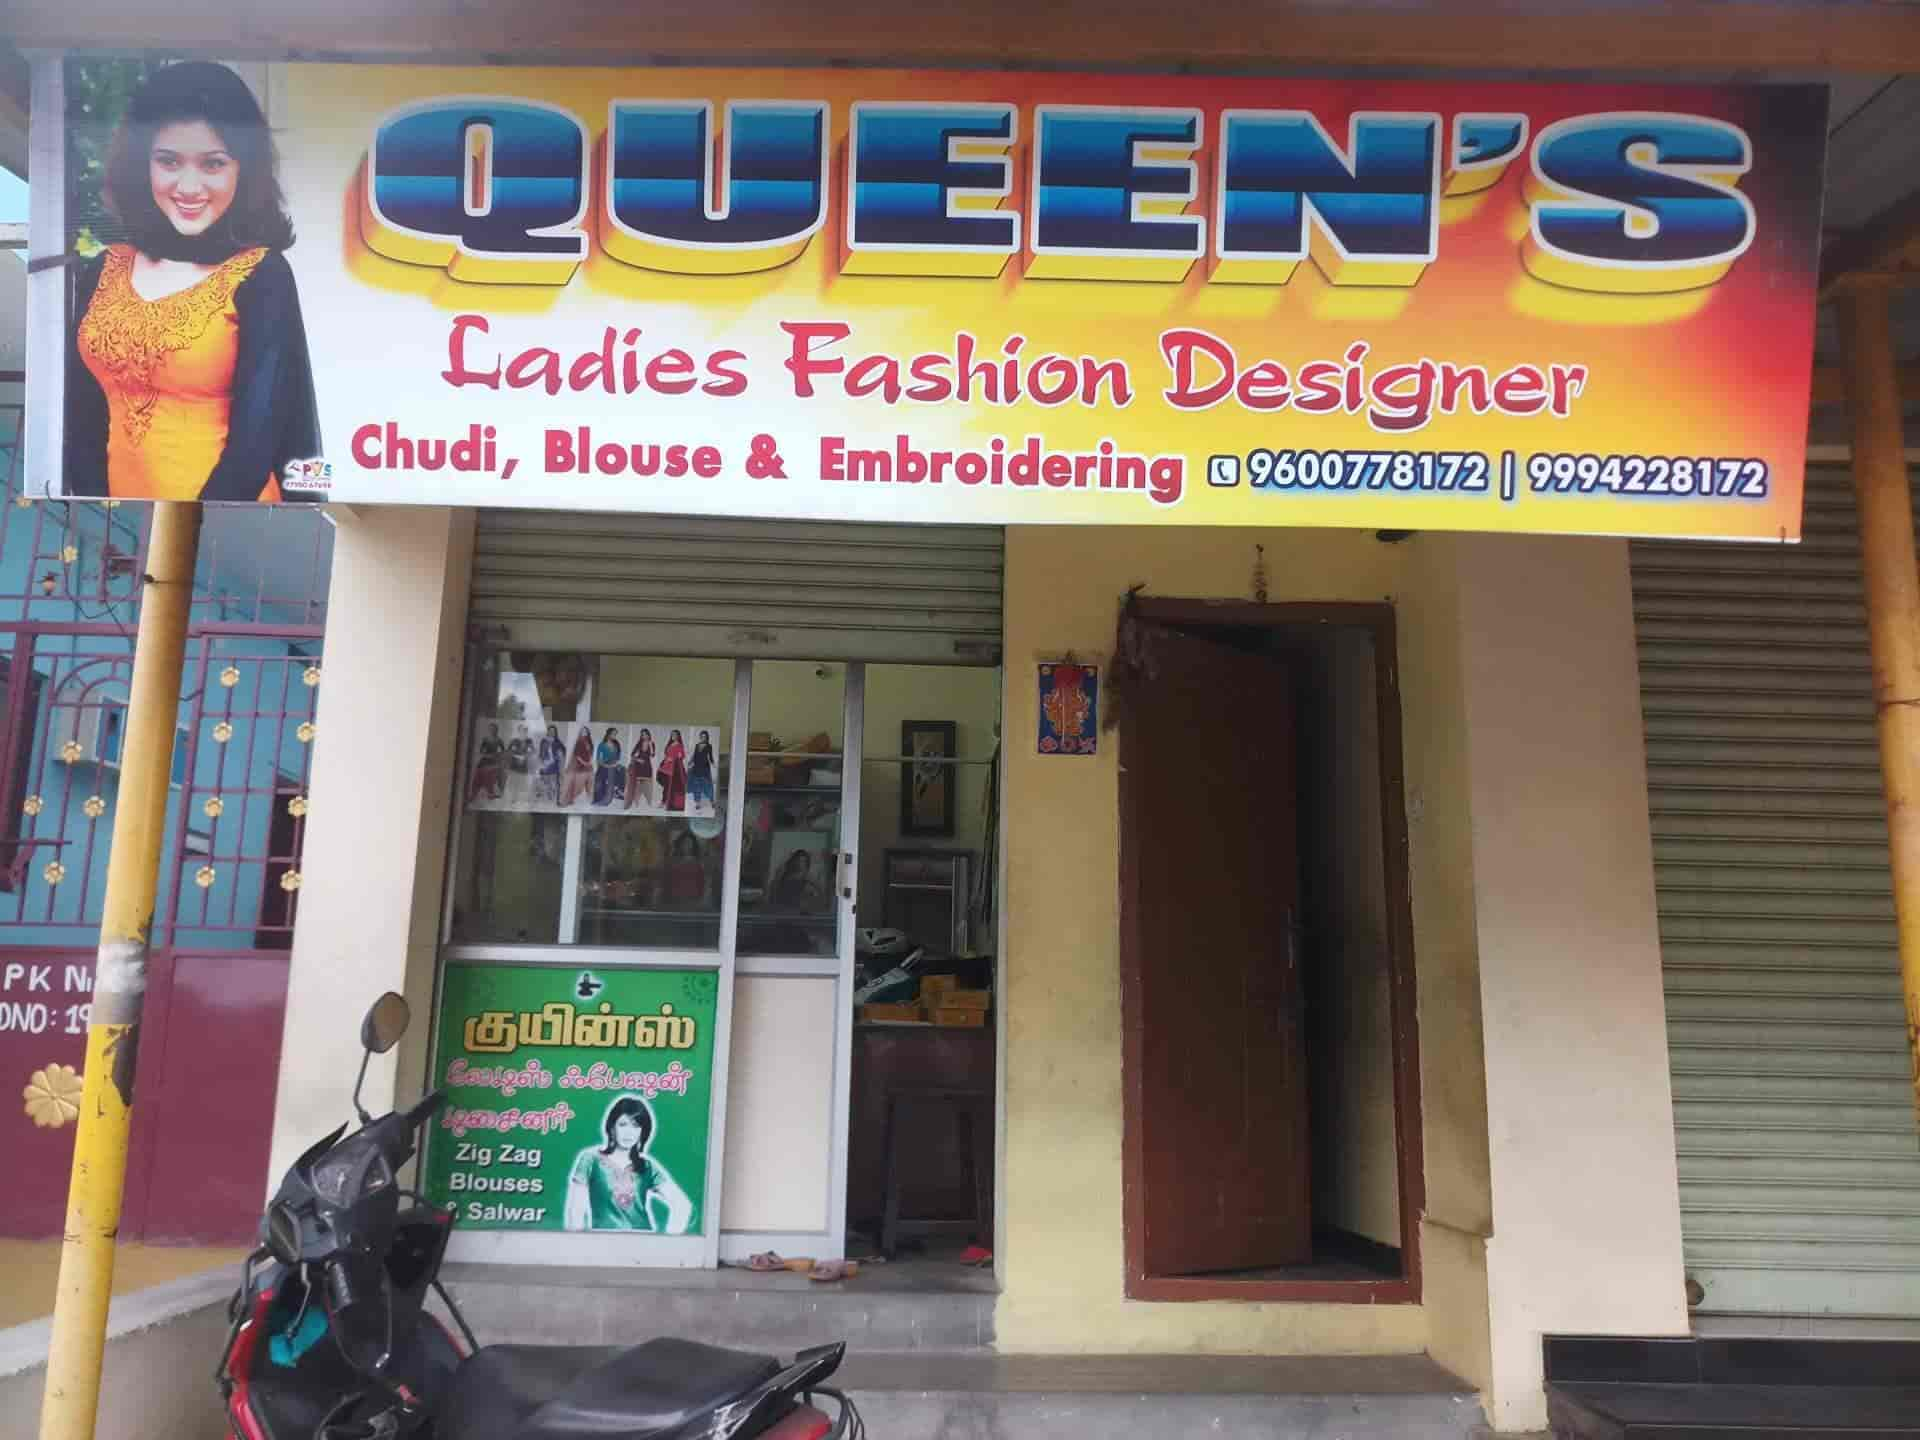 Queens Ladies Fashion Designer Perur Embroidery Job Works In Coimbatore Coimbatore Justdial